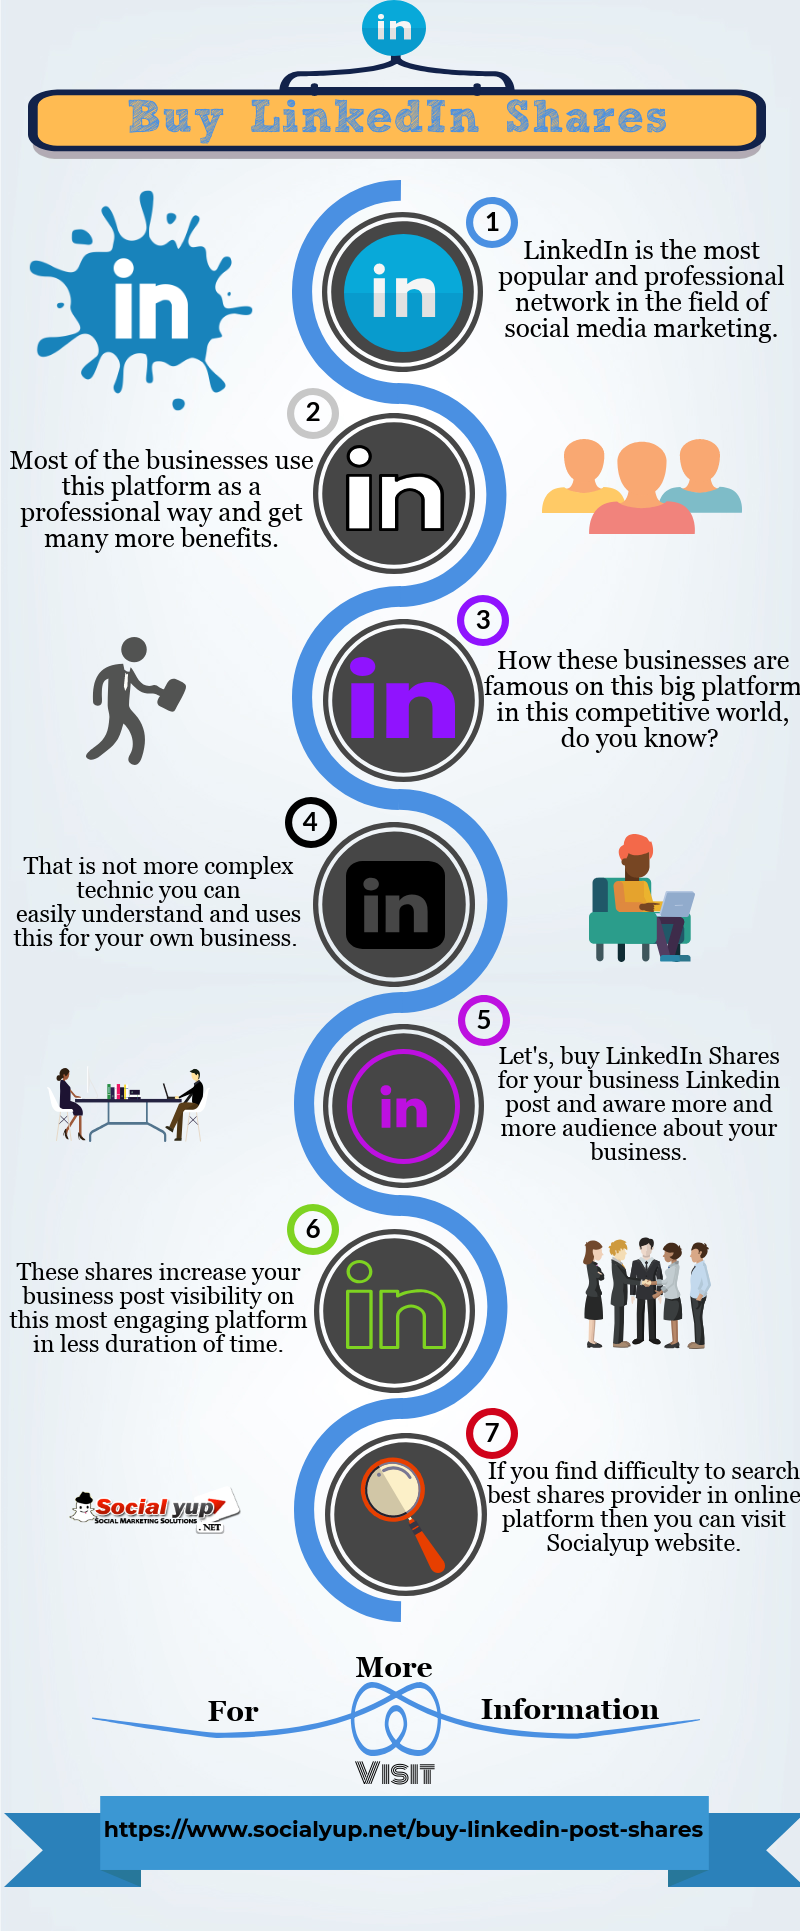 Linkedin Is More Professional Network With 250 Million Monthly